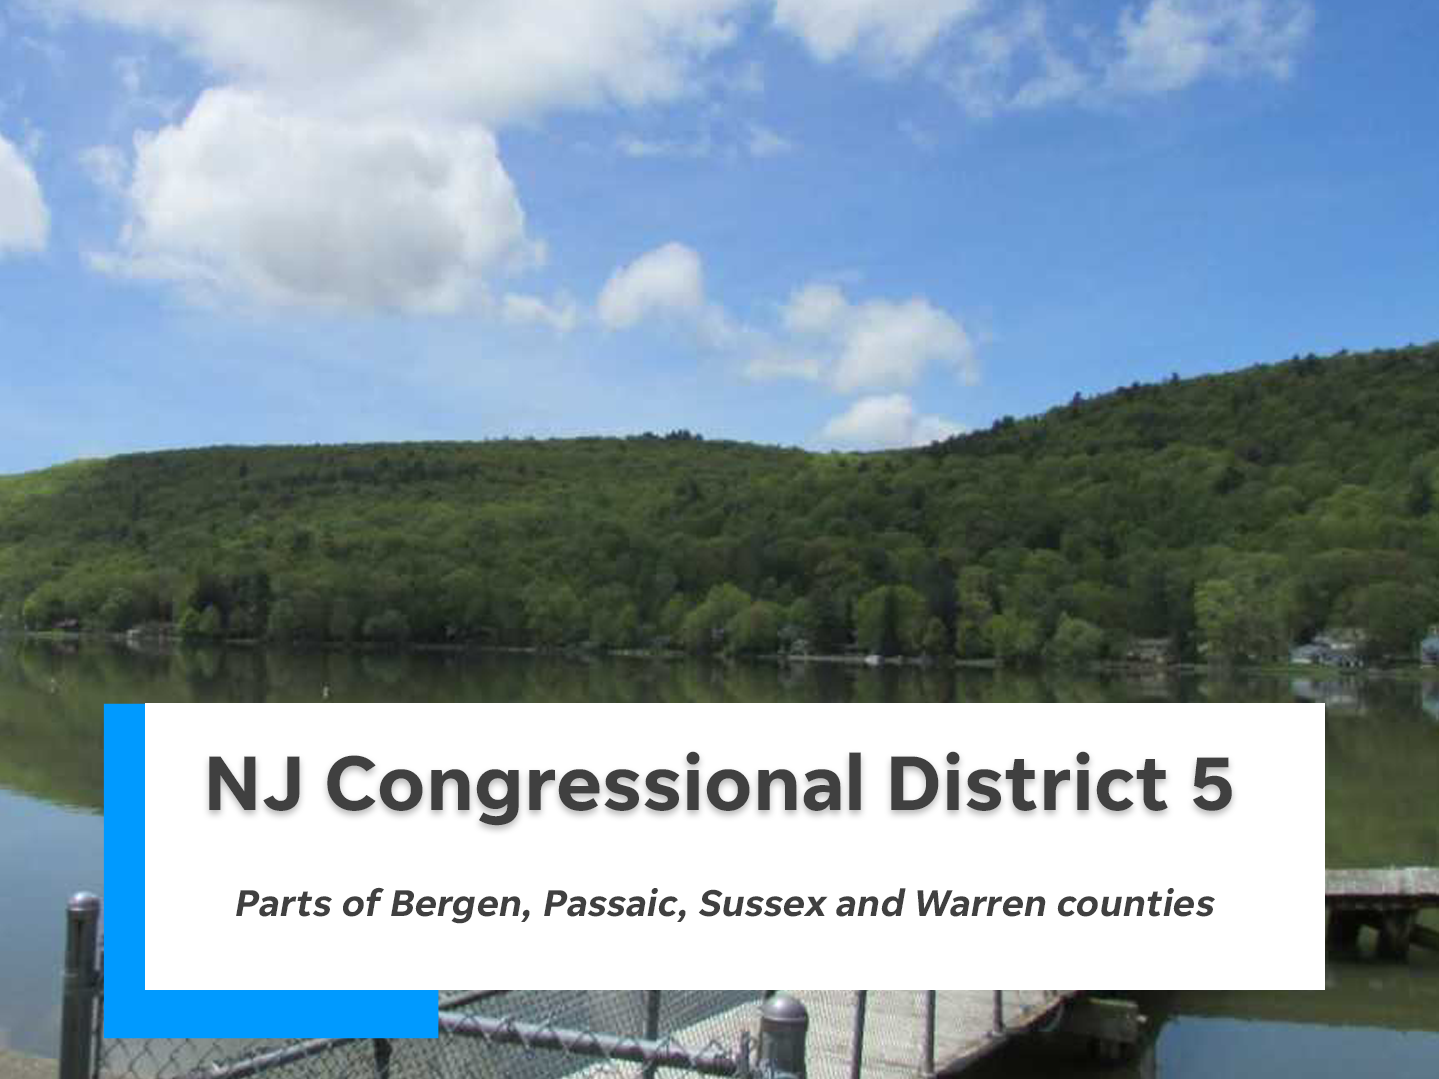 NJ's fifth congressional district is comprised of parts of Bergen, Passaic, Sussex and Warren counties.